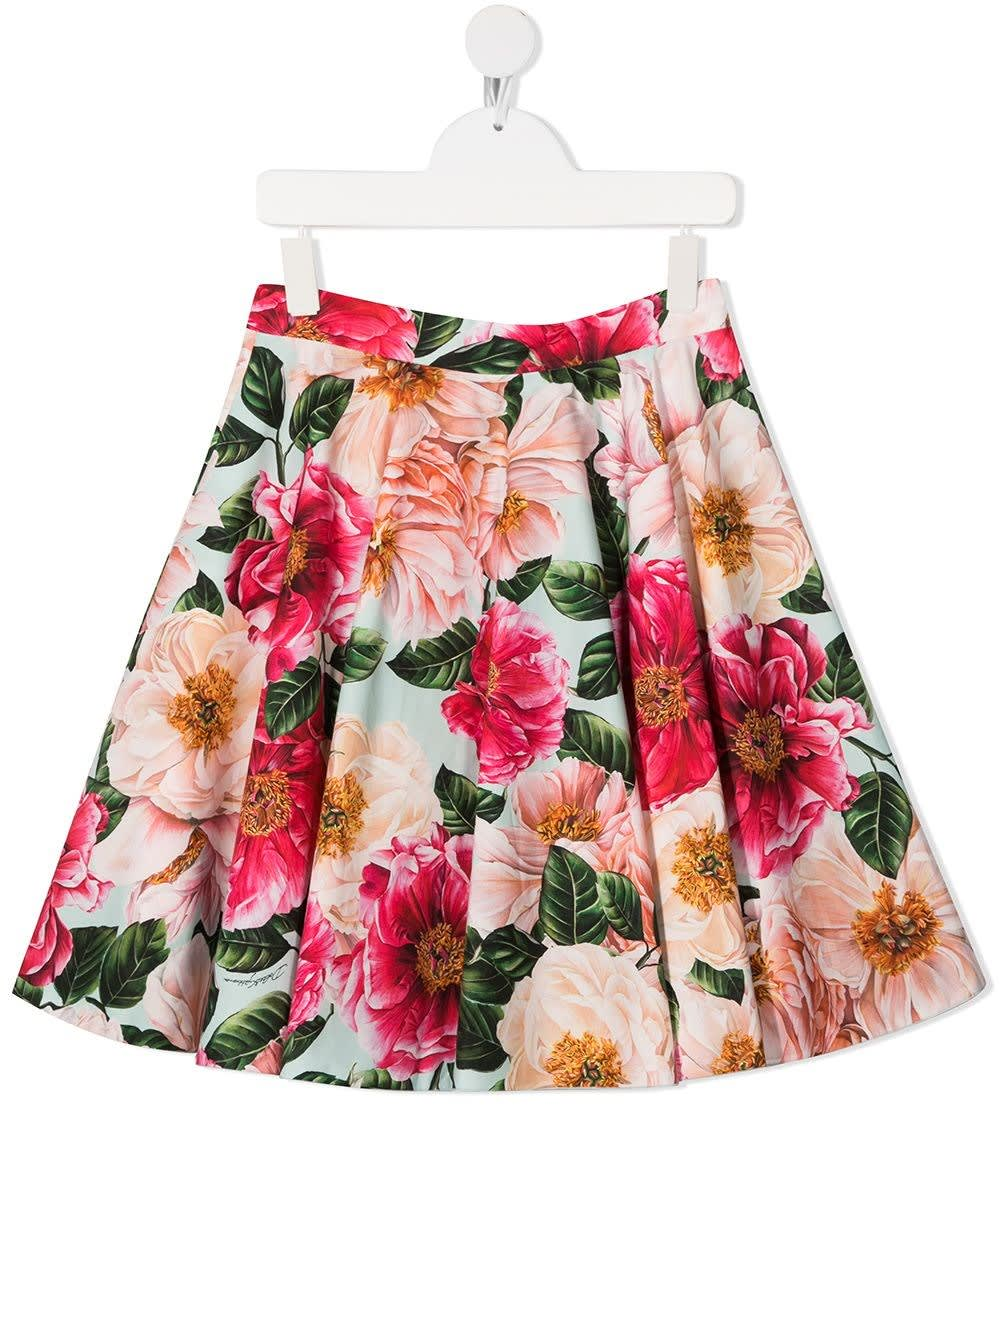 Dolce & Gabbana PLEATED SKIRT WITH CAMELLIA PRINT